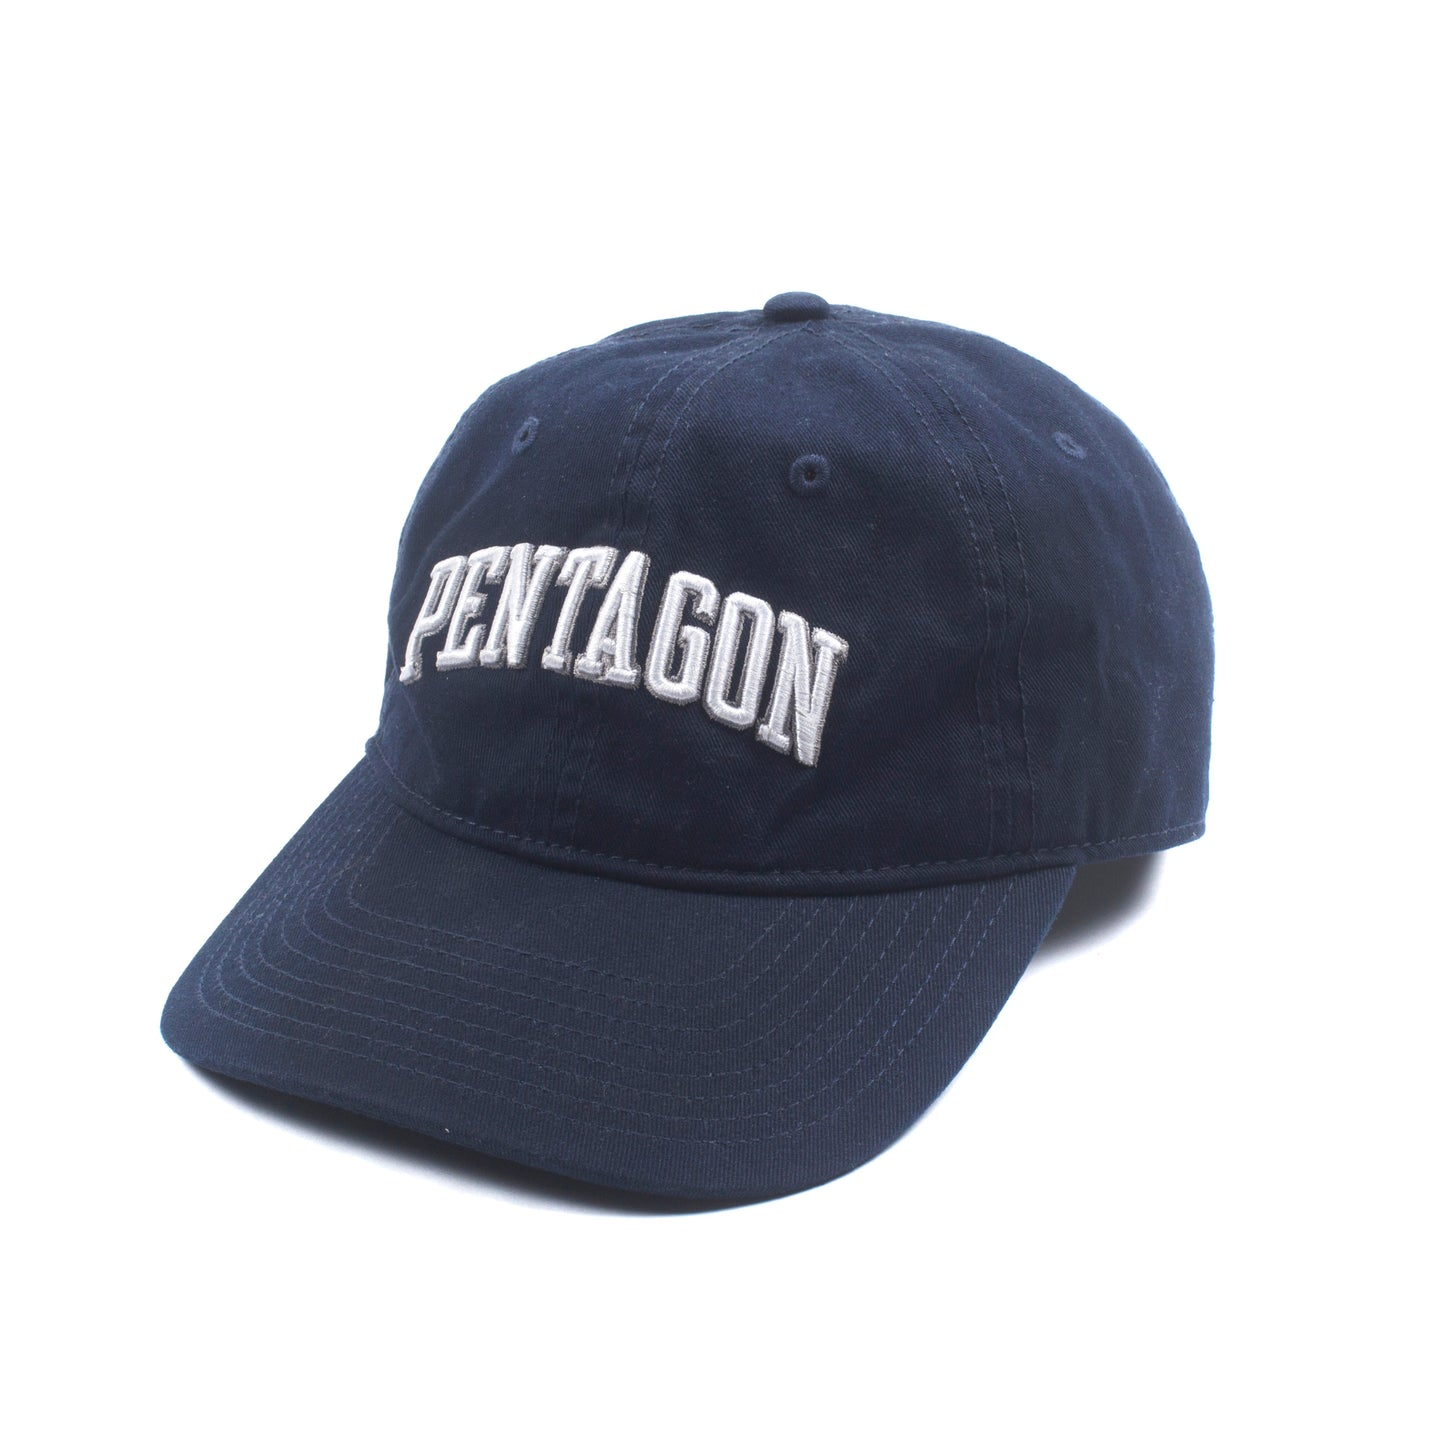 Vintage Pentagon Champion Hat